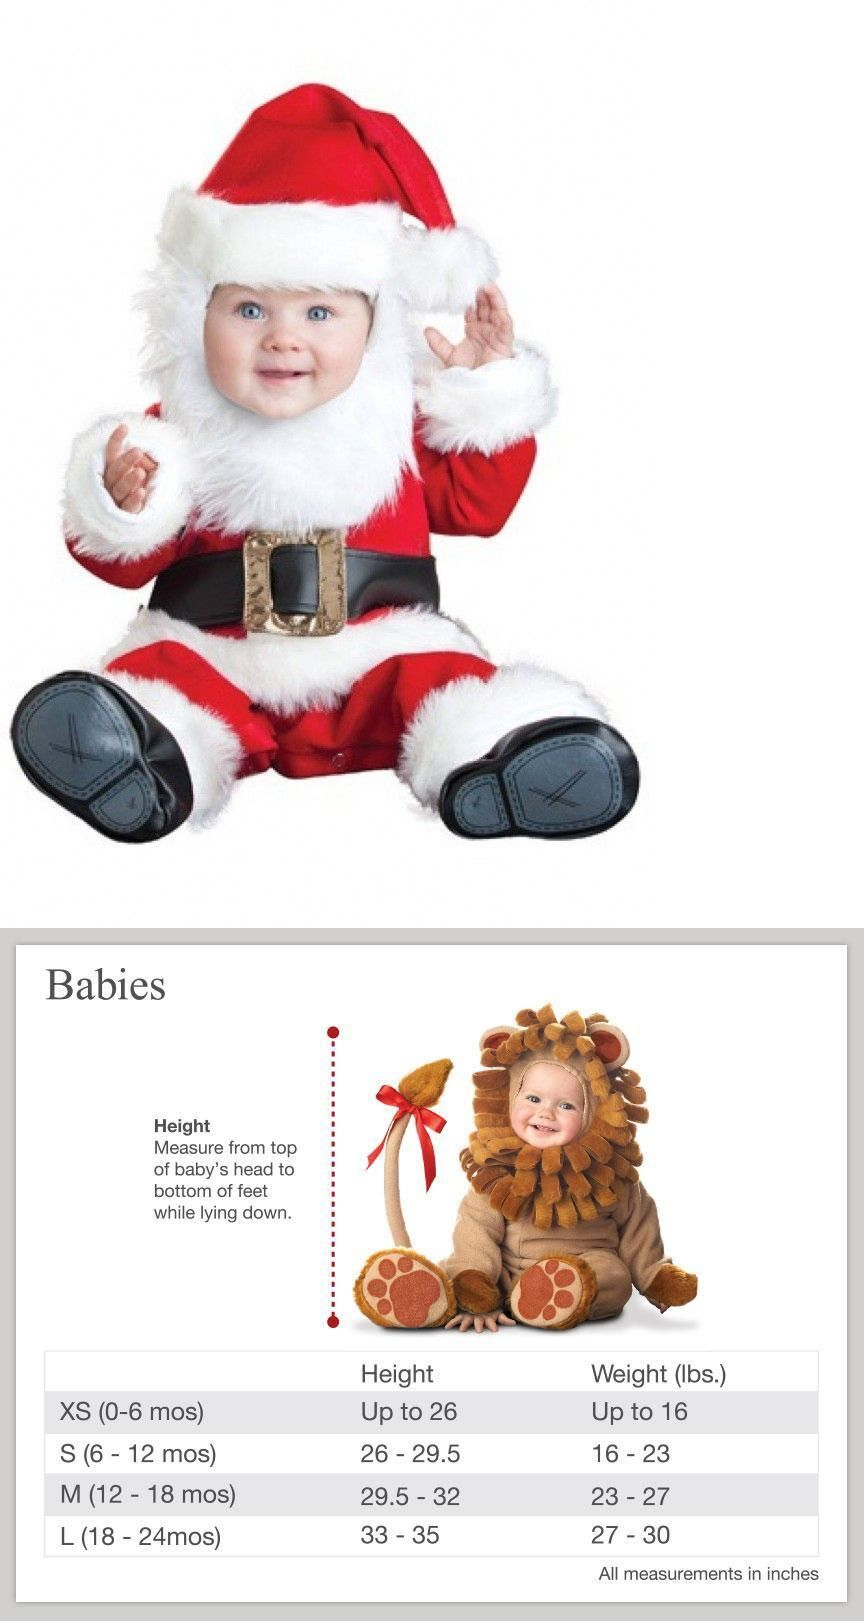 a8724ee3b Infants and Toddlers 90635: Deluxe Santa Baby Costume,Deluxe Infant Toddler  Deluxe Santa Costume, 6-24 Mo S -> BUY IT NOW ONLY: $39.99 on #eBay #infants  ...